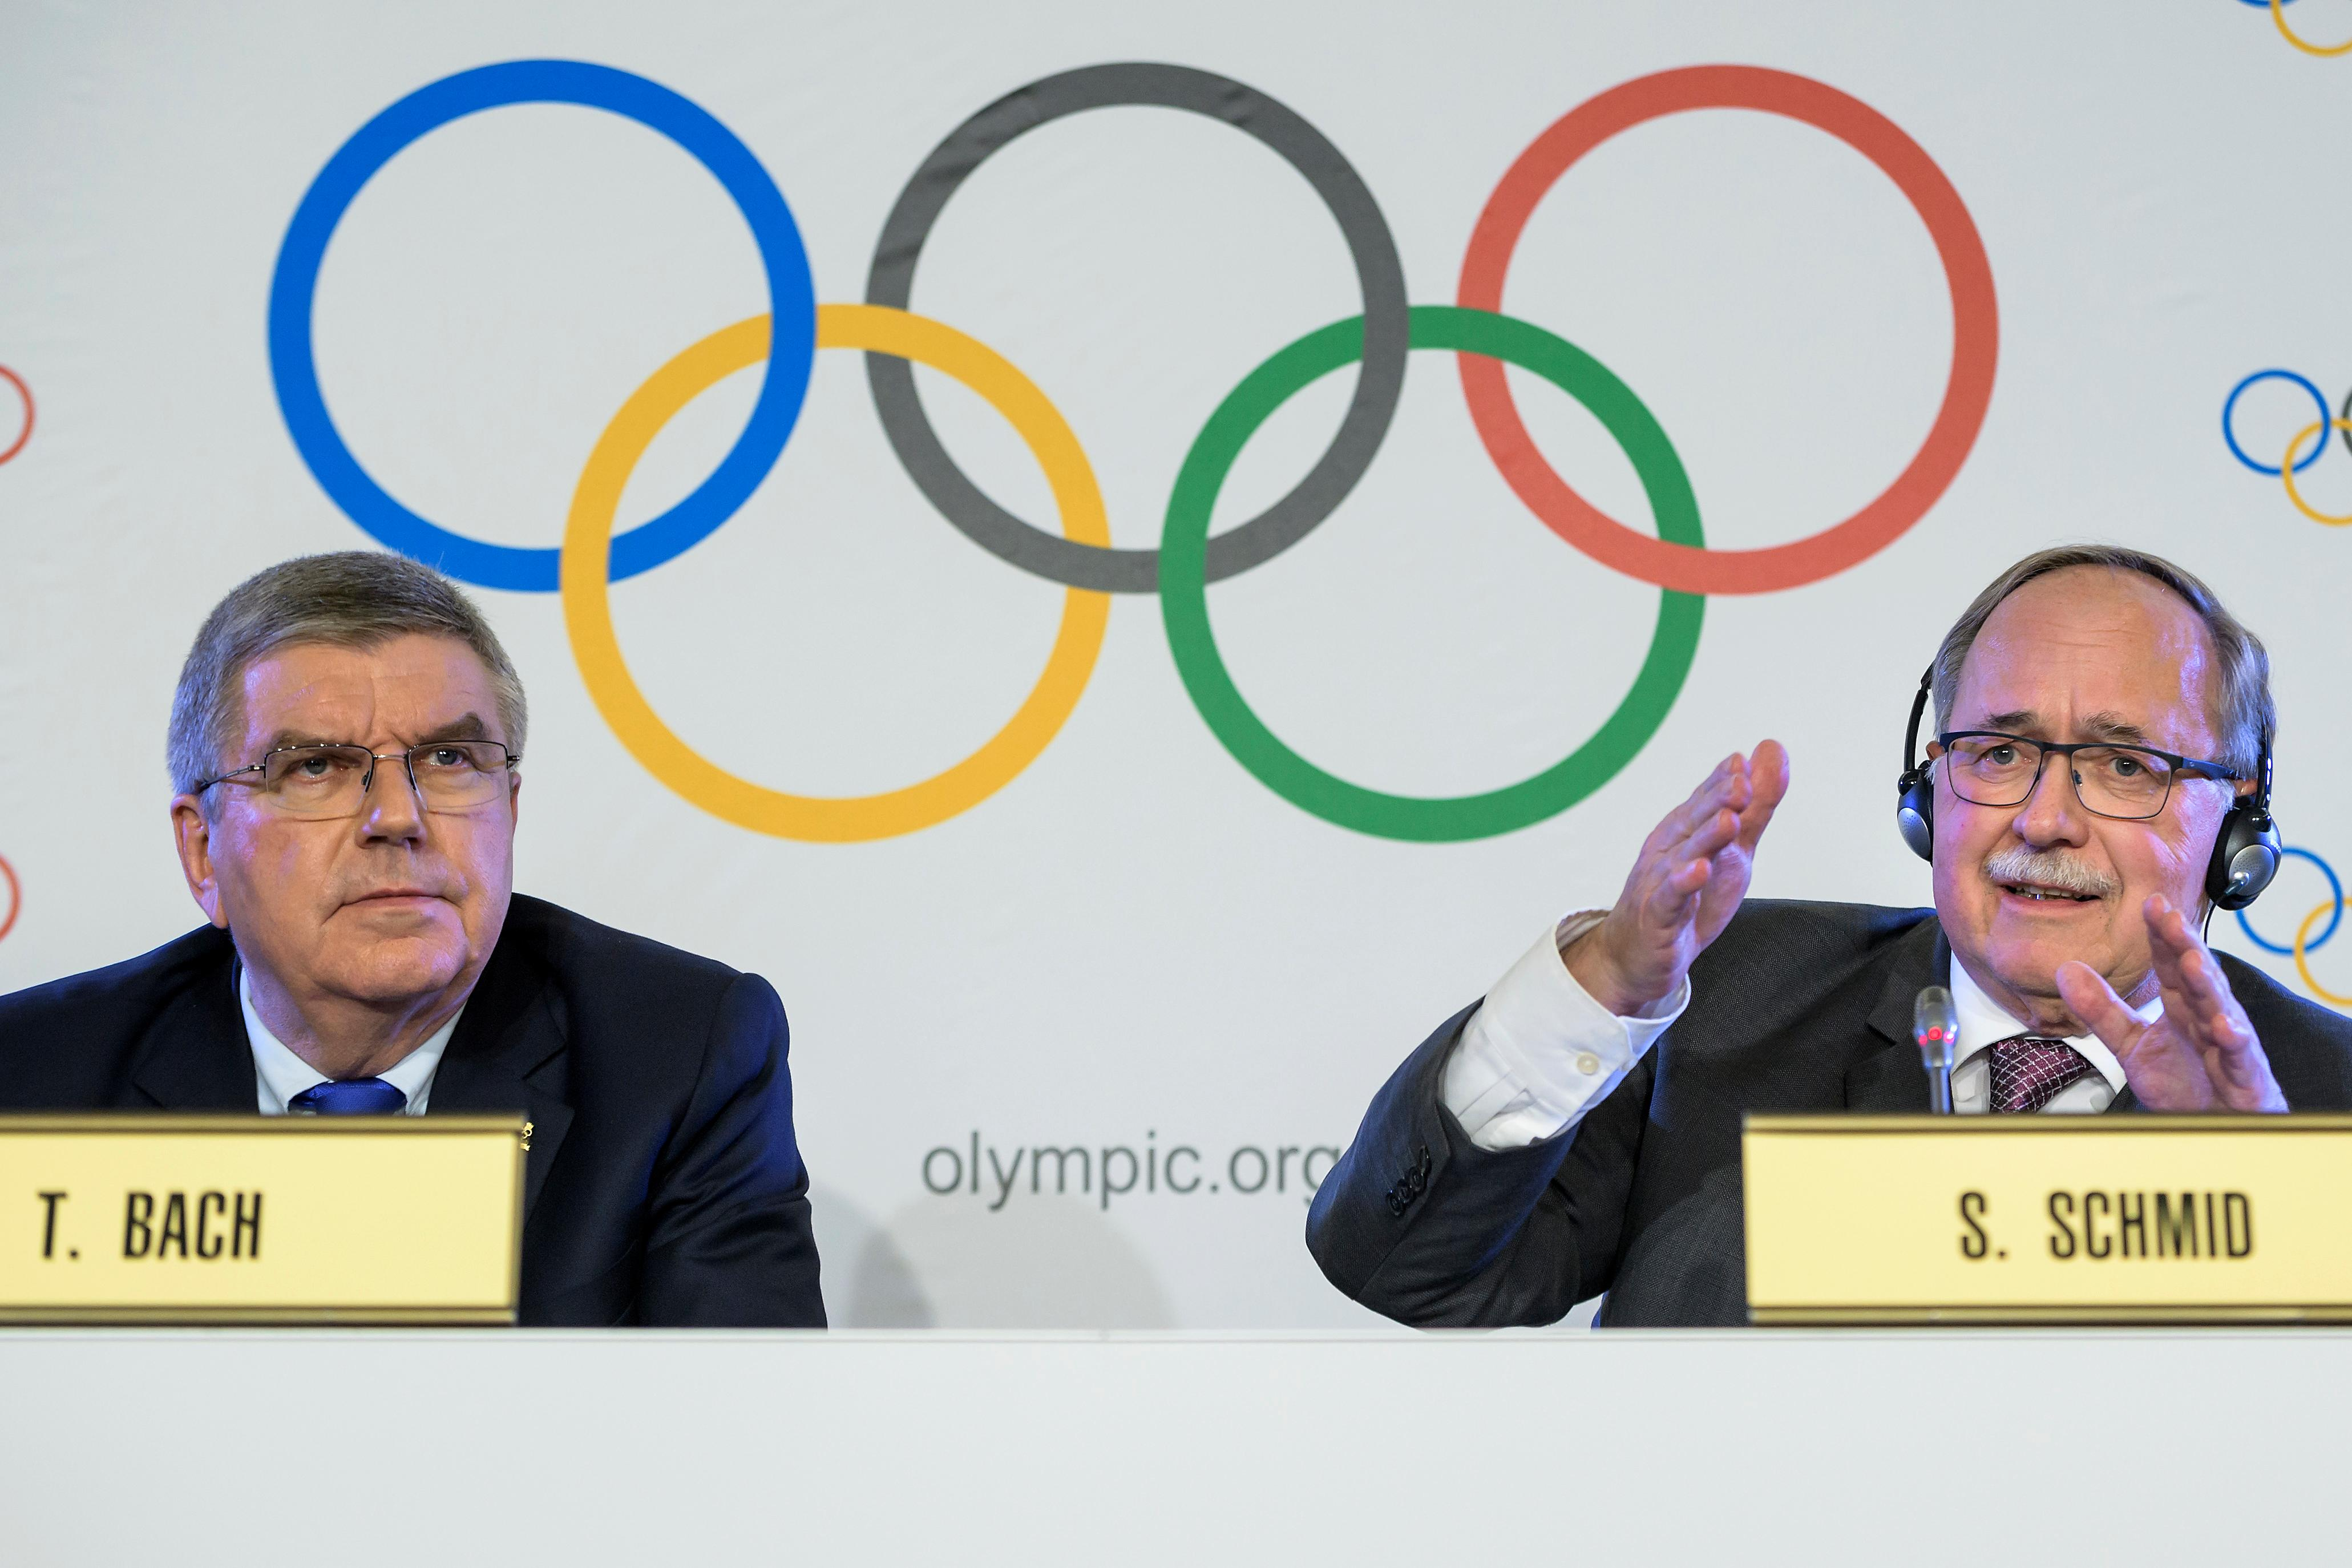 International Olympic Committee, IOC, President Thomas Bach from Germany, left, and Samuel Schmid, President of the IOC Inquiry Commission and former President of Switzerland, right, react during a press conference after an Executive Board meeting, in Lausanne, Switzerland, Tuesday, Dec. 5, 2017. Russian athletes will be allowed to compete at the upcoming Pyeongchang Olympics as neutrals despite orchestrated doping at the 2014 Sochi Games, the International Olympic Committee said Tuesday. (Jean-Christophe Bott/Keystone via AP)